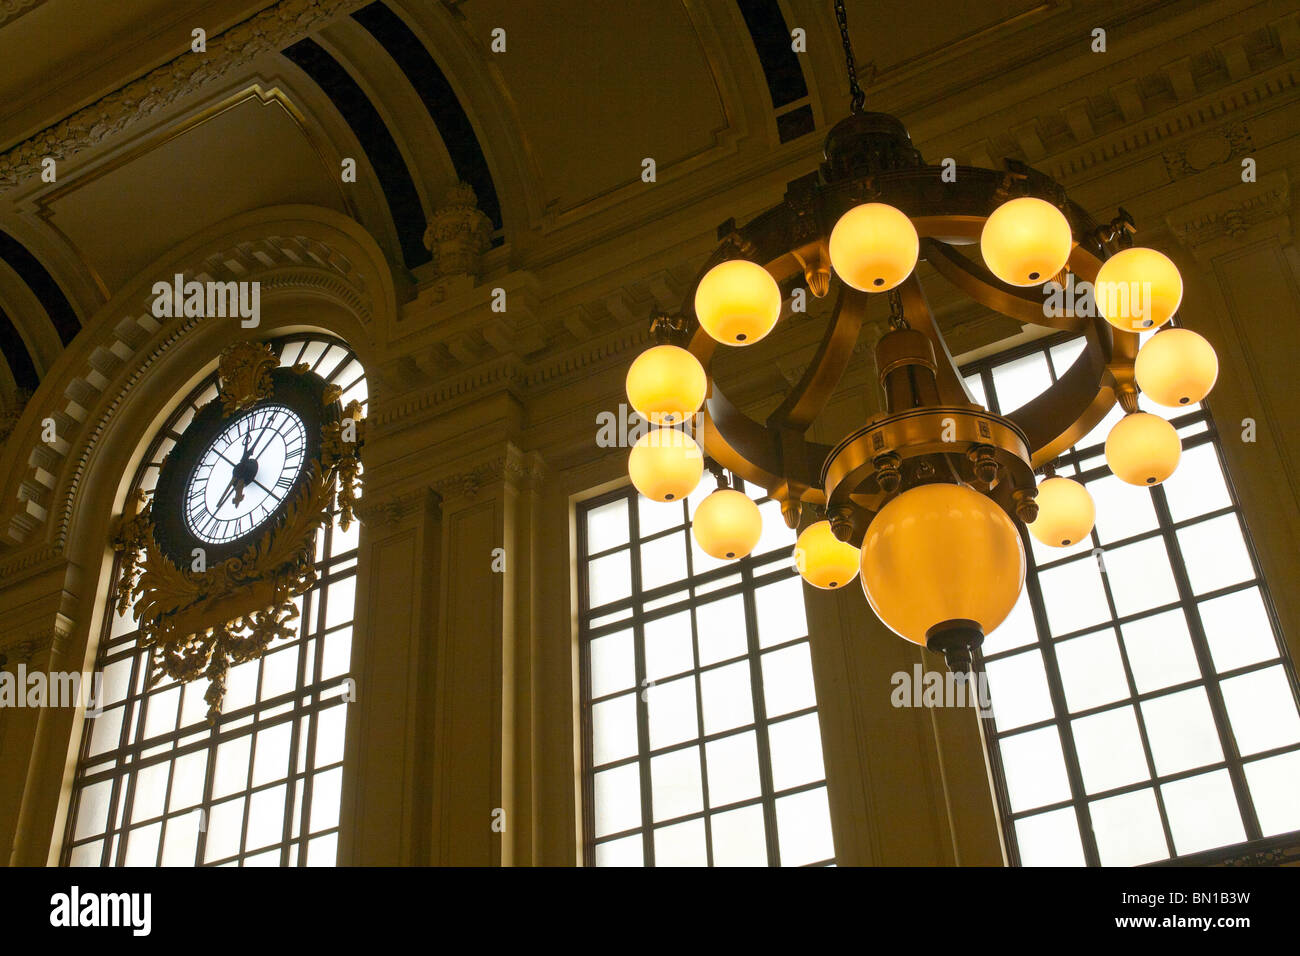 A train station clock and light fixture stock photo 30148829 alamy a train station clock and light fixture arubaitofo Image collections